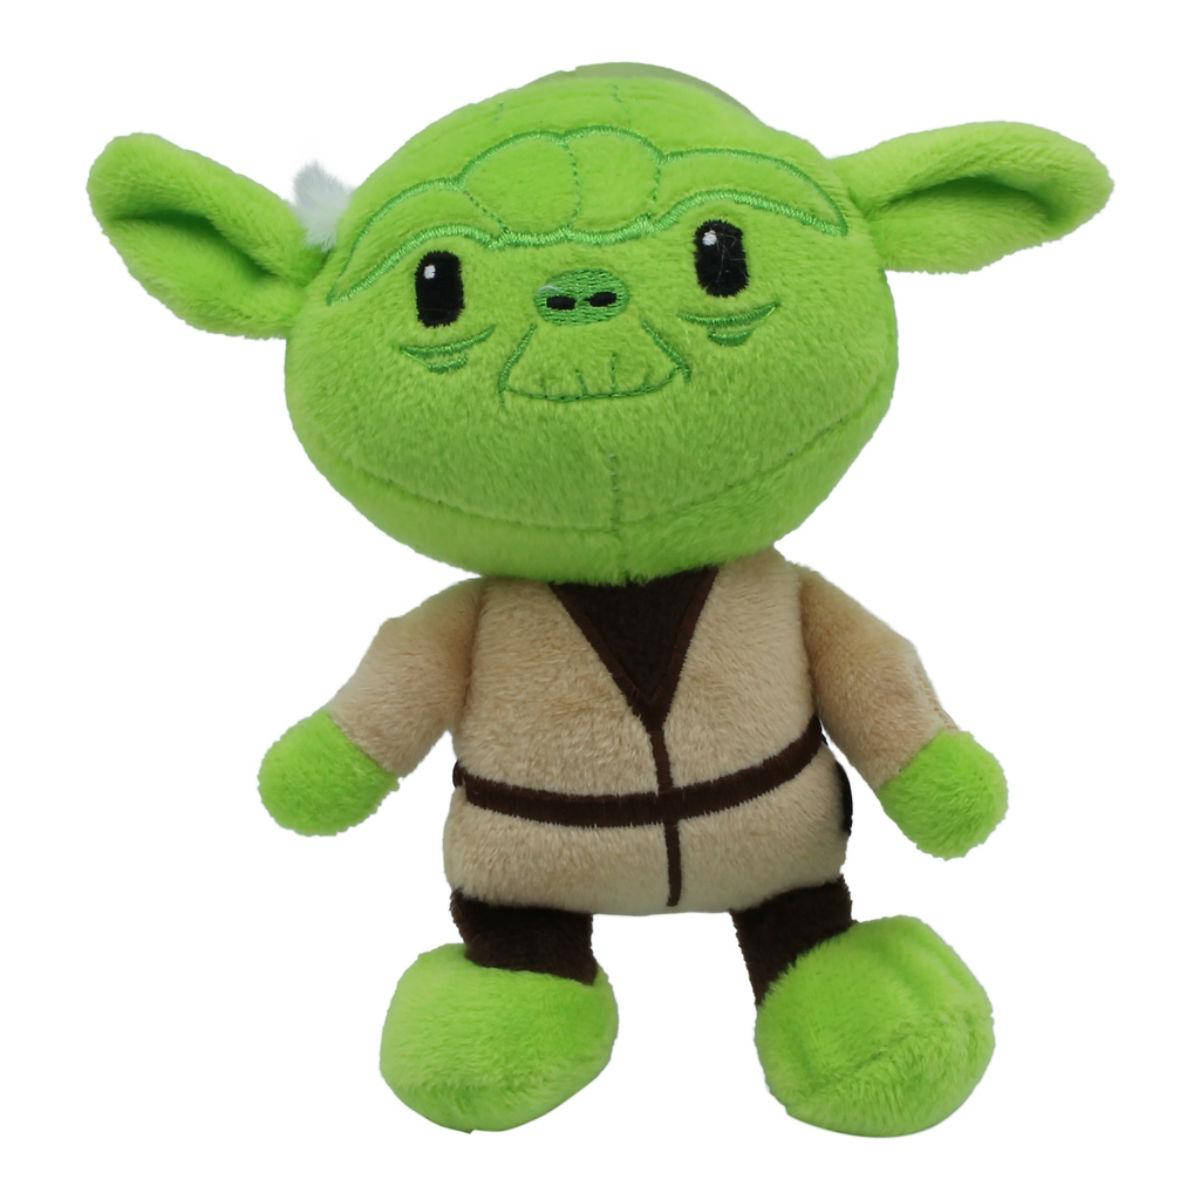 Star Wars Plush Dog Toy - Yoda